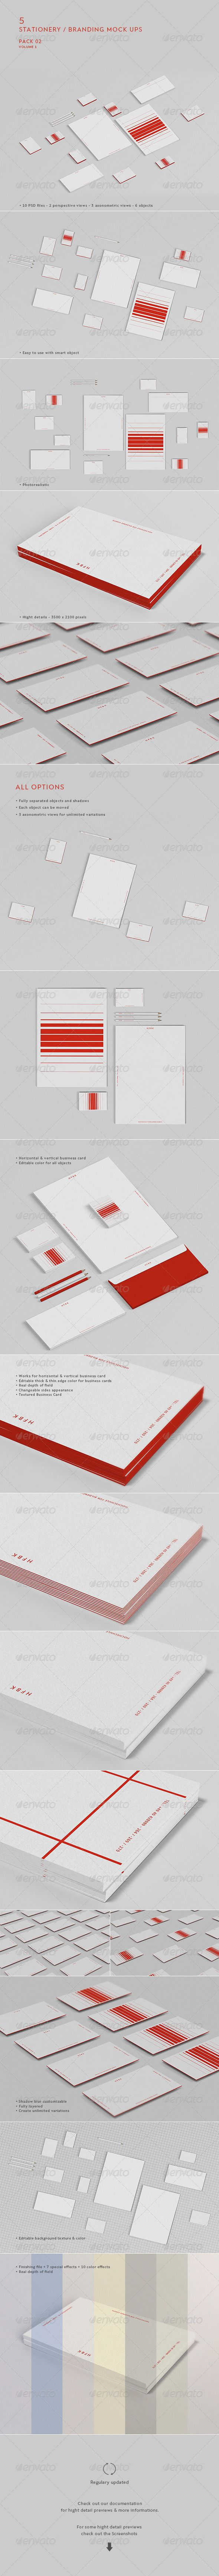 formats of business letters%0A     Business Letter Of Intent Templates  u     Free Sample  Example Format  Download    Free  u     Premium Templates   Portarretrato   Pinterest   Business  letter